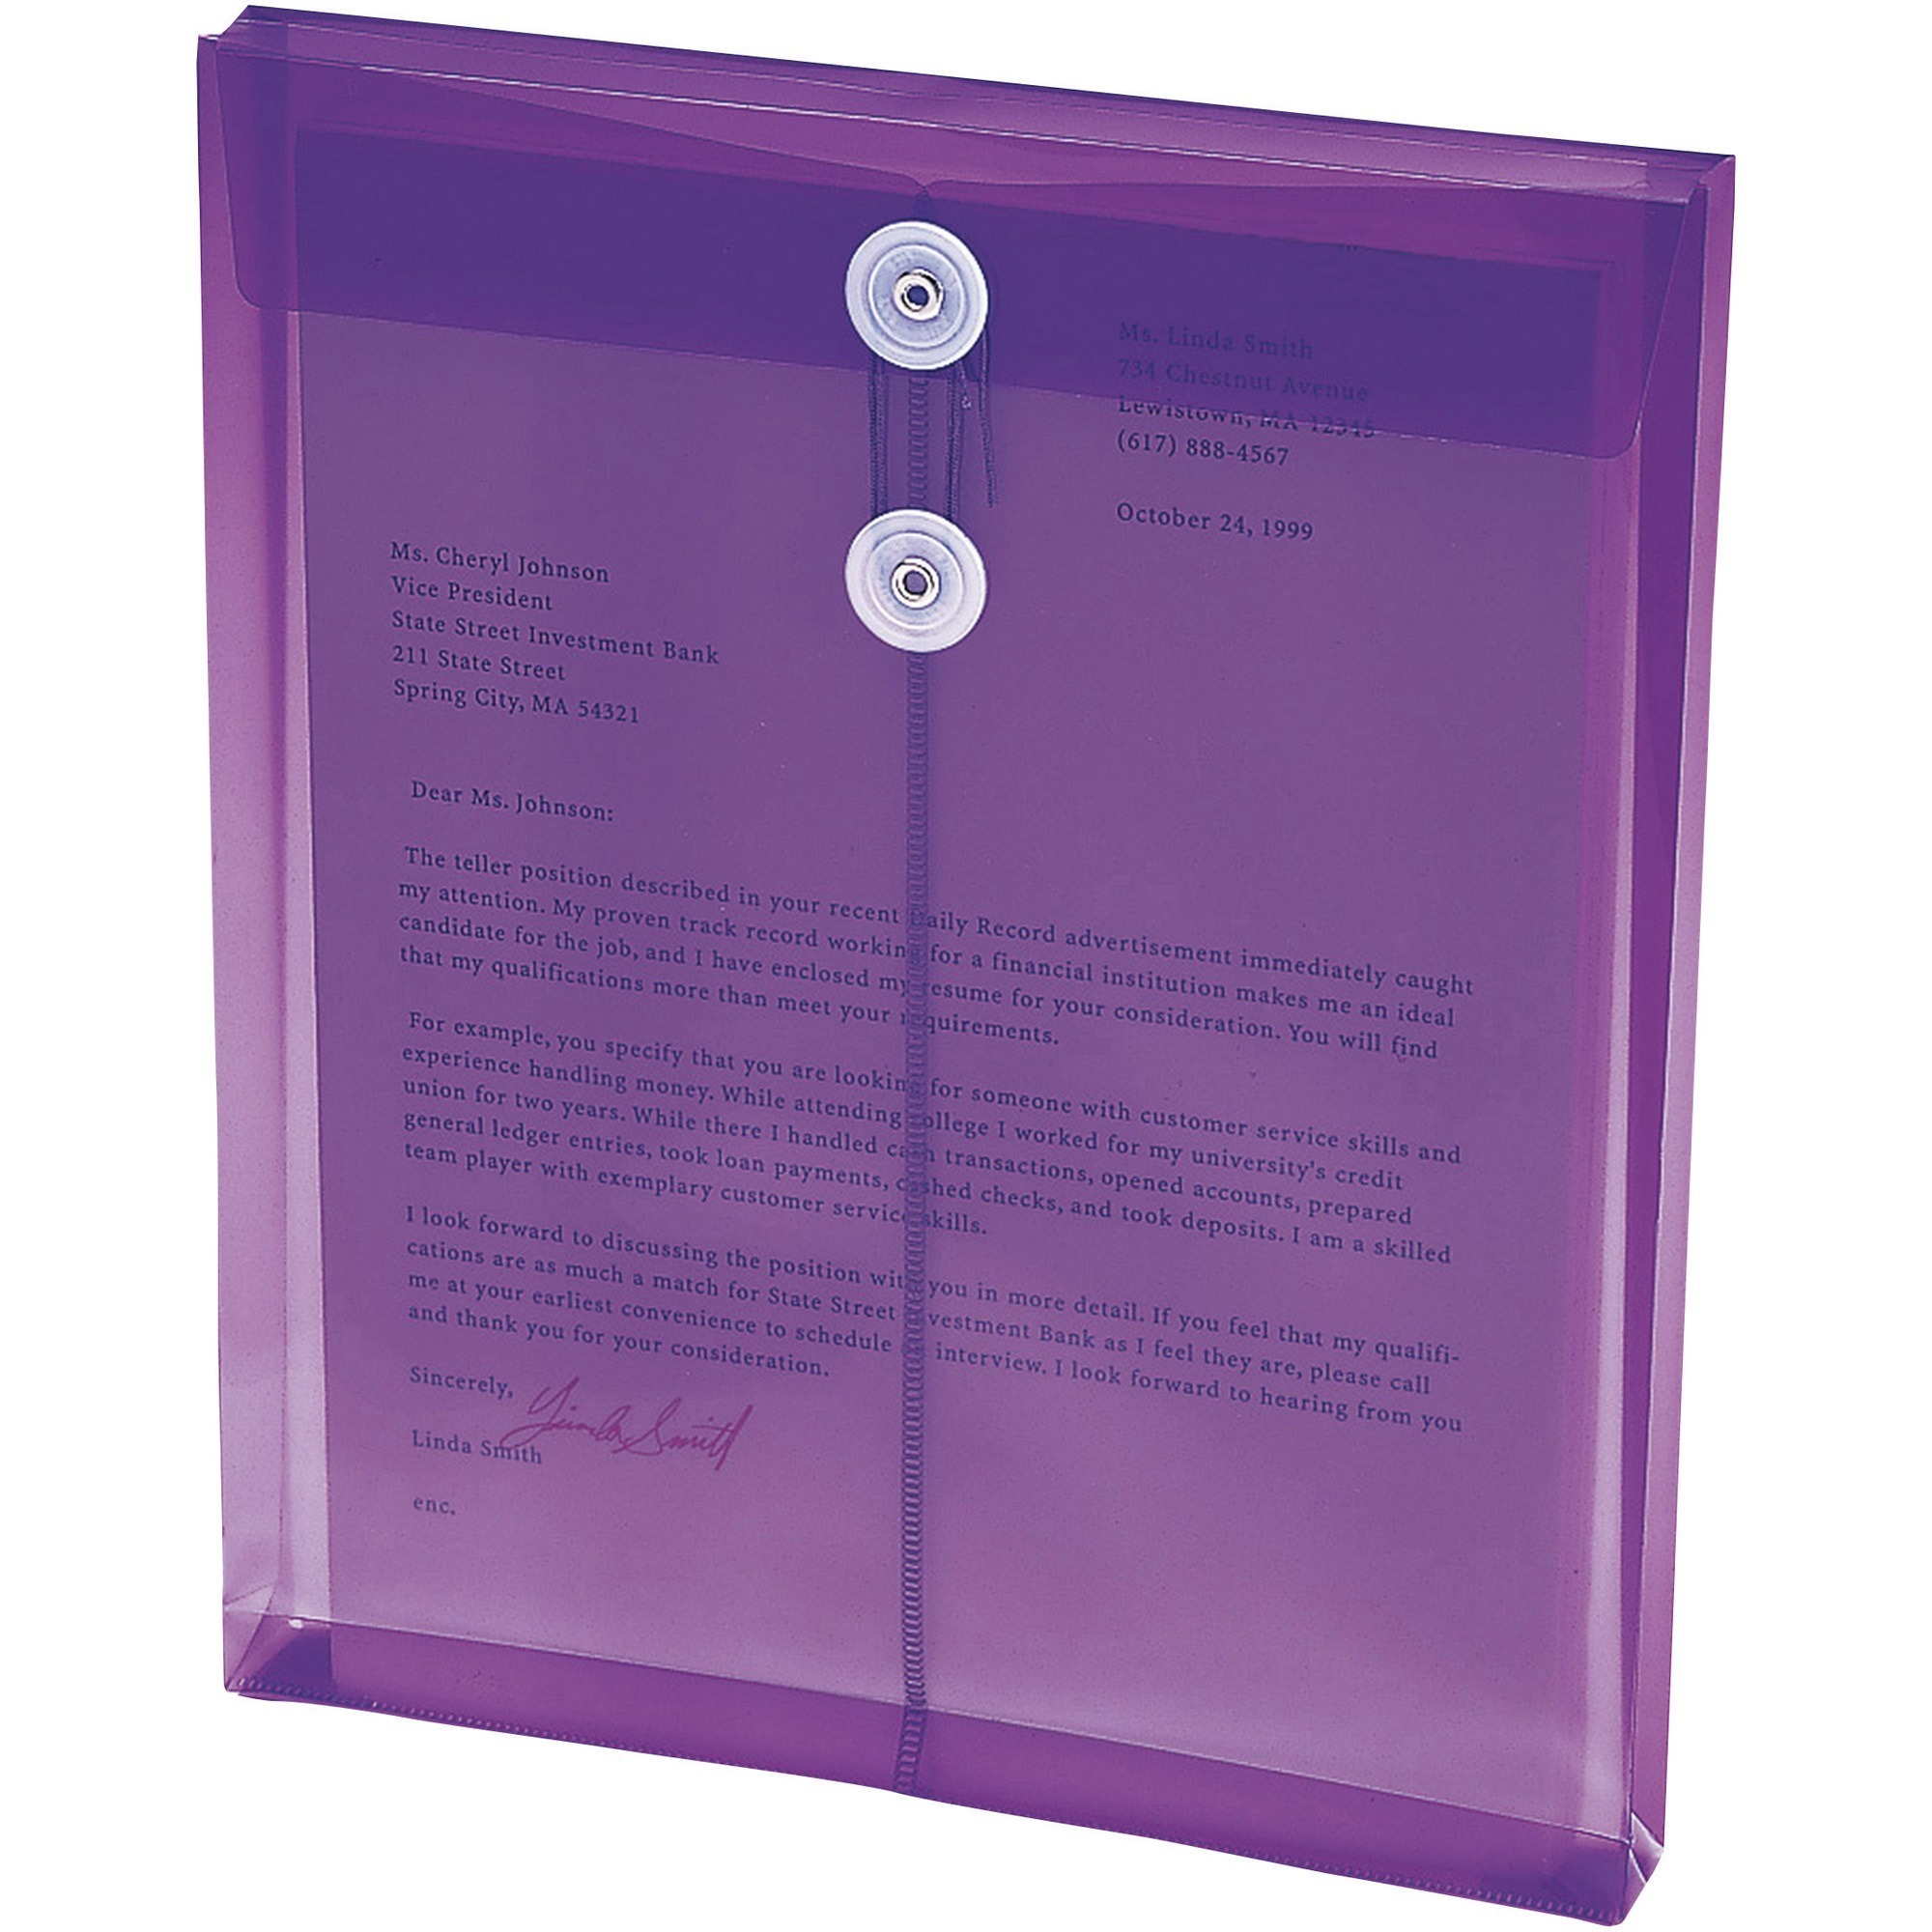 Smead, SMD89544, String Tie Closure Poly Envelopes, 5 / Pack, Purple